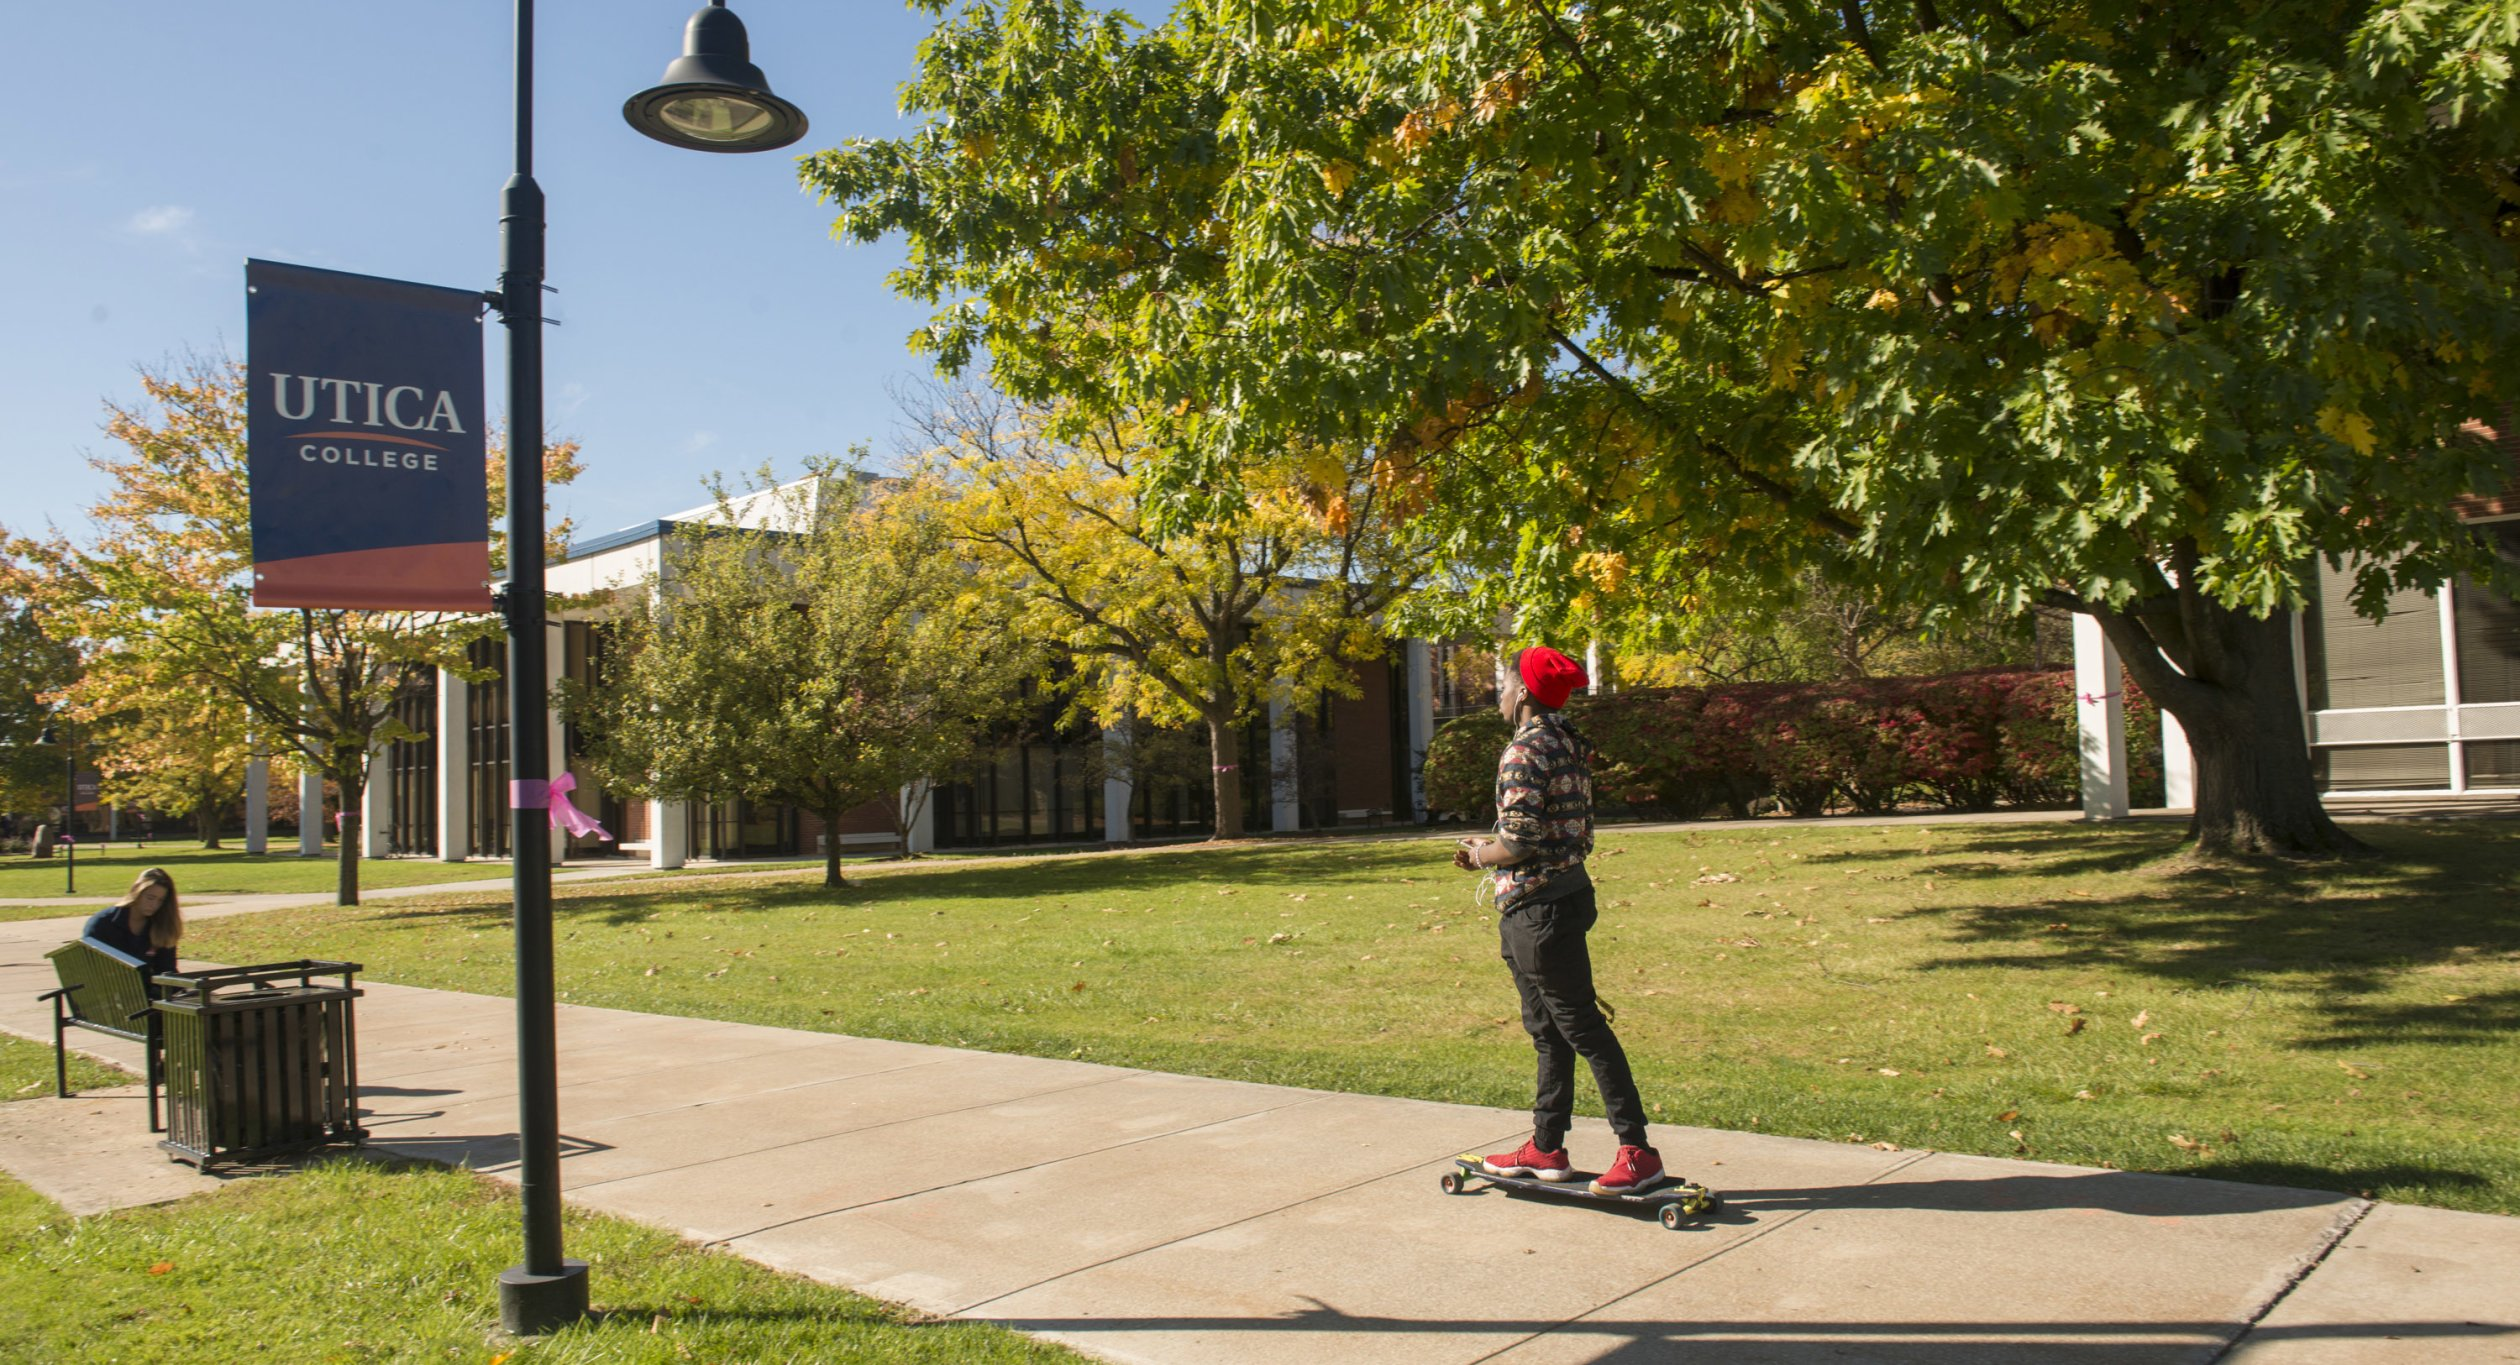 Fall Campus with Skateboarder